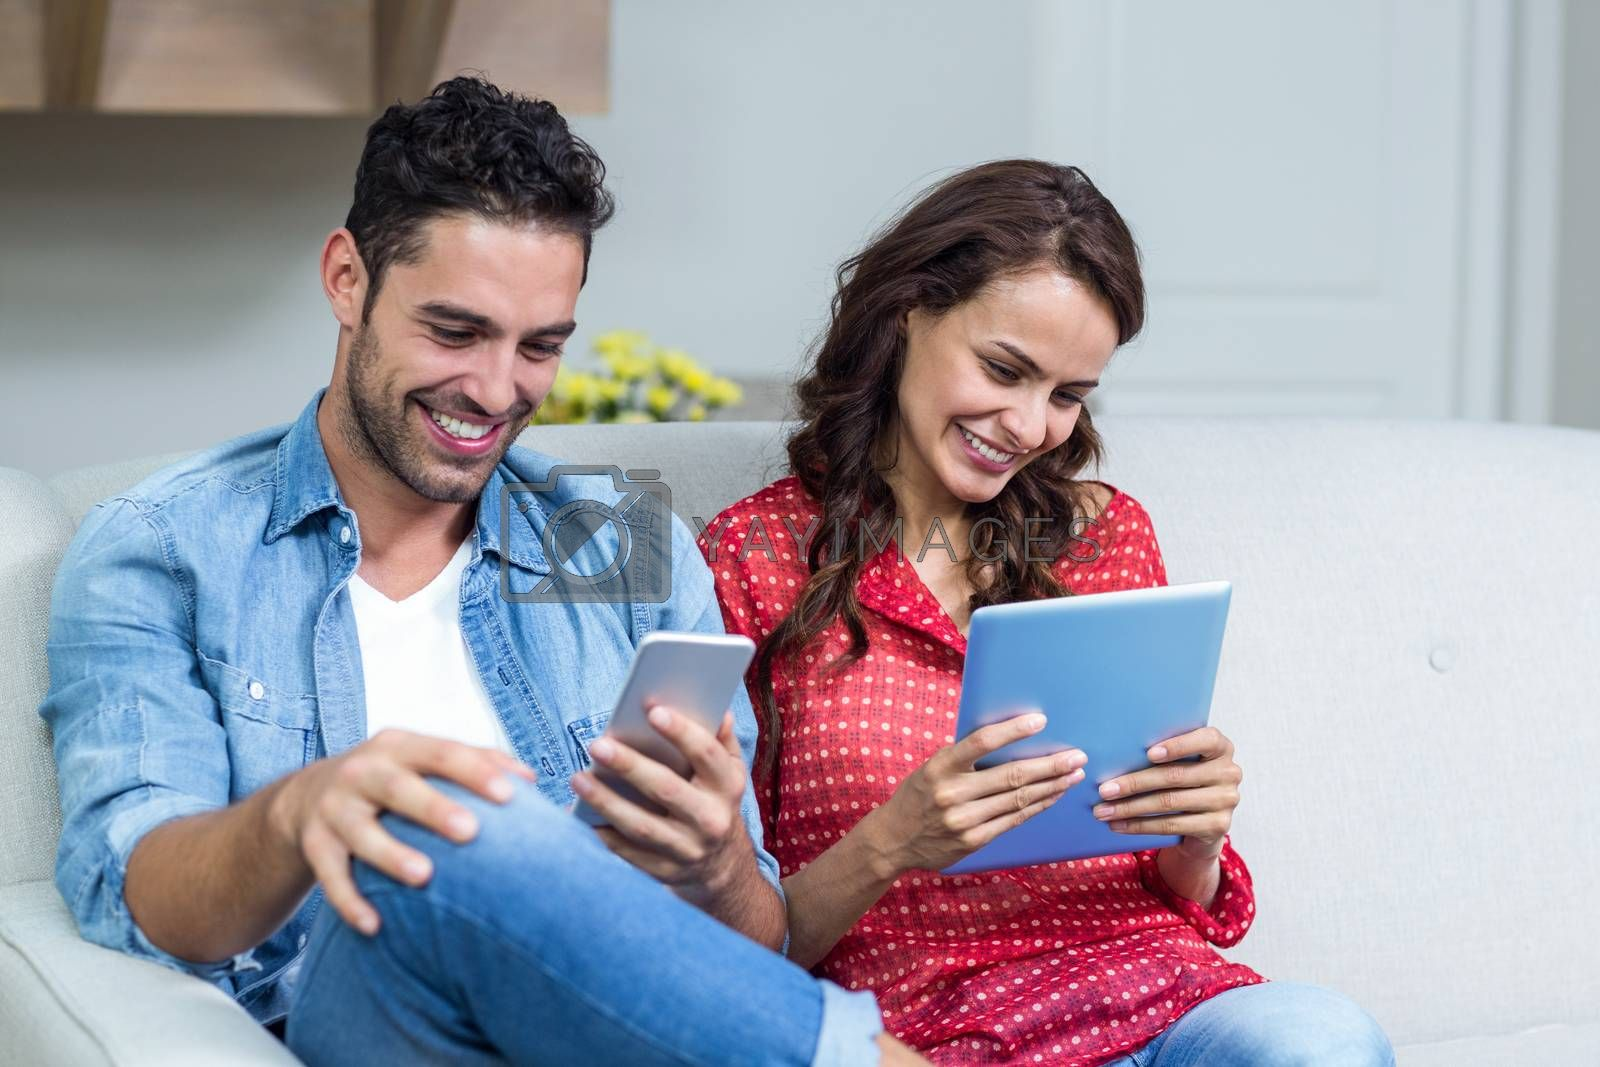 Smiling couple using technology at home